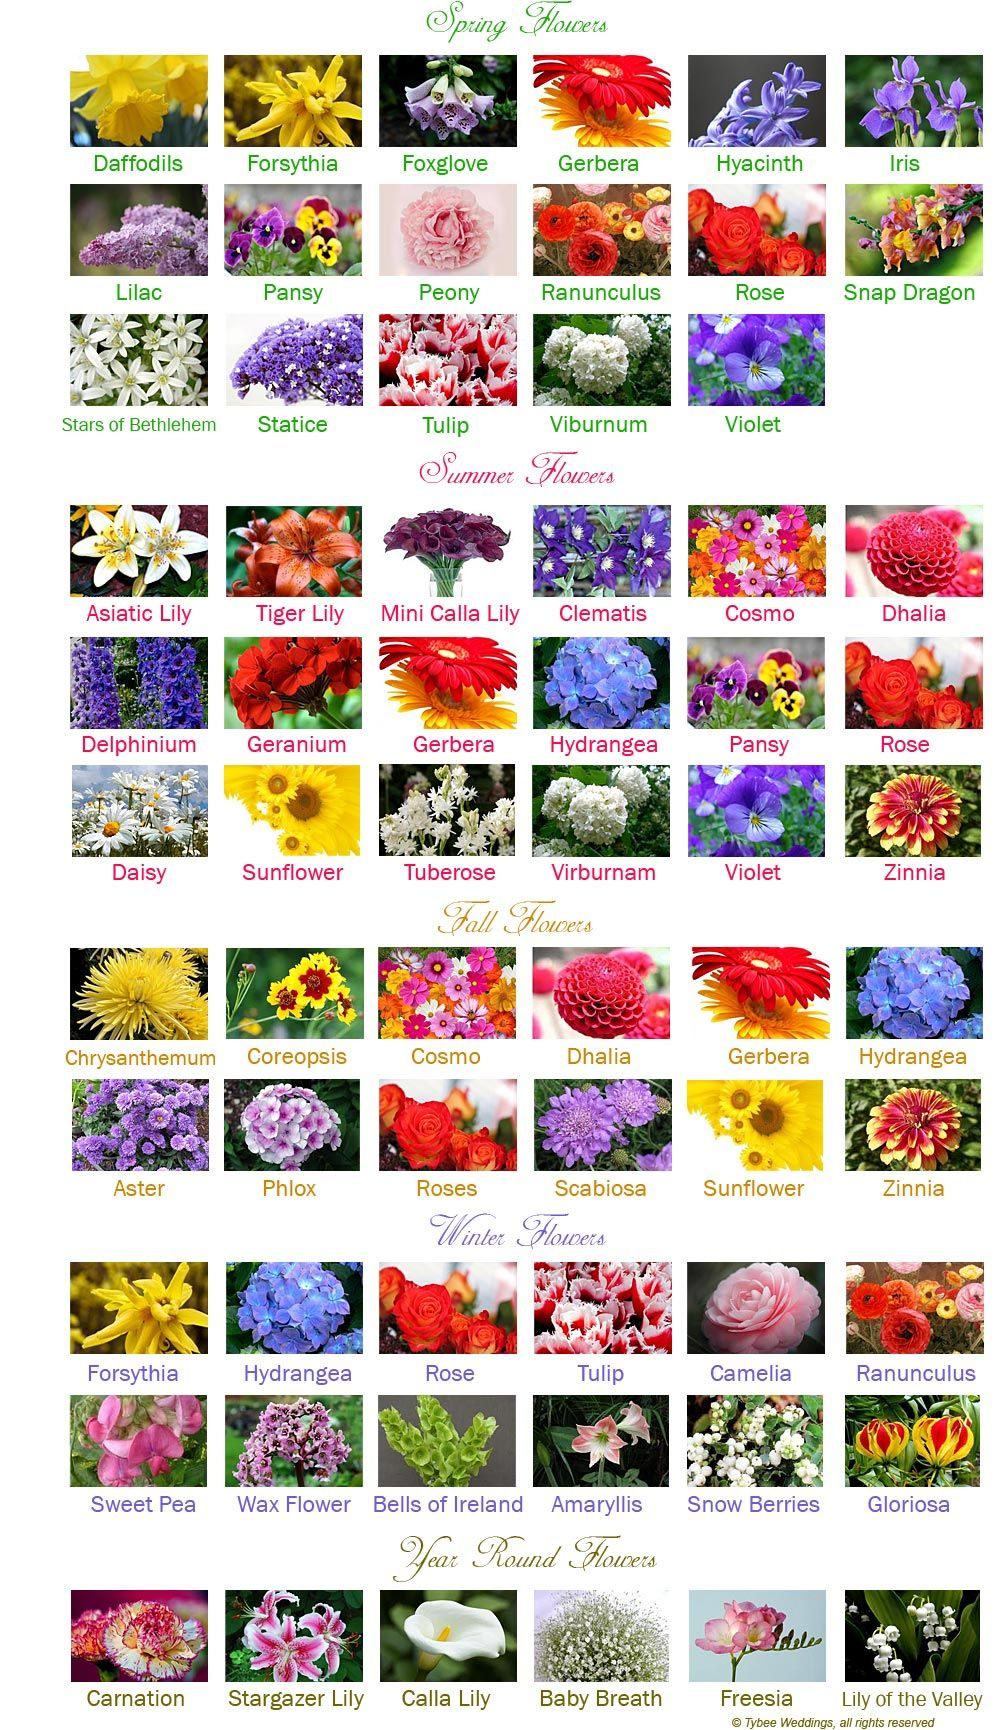 Wedding Flowers by Month Wedding flowers, Types of